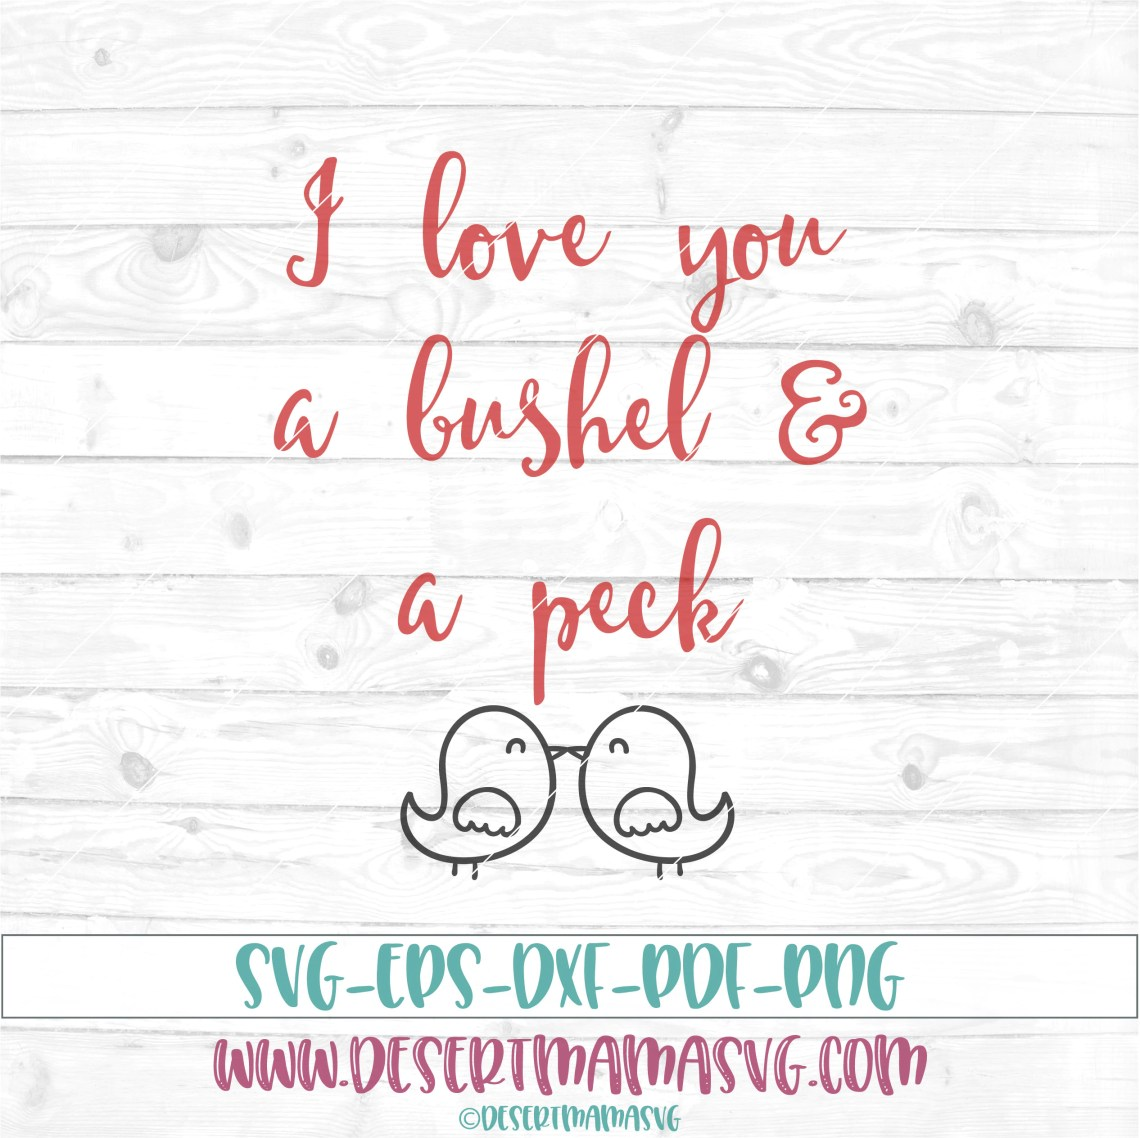 Download I love you a bushel and a peck svg eps dxf png cricut or